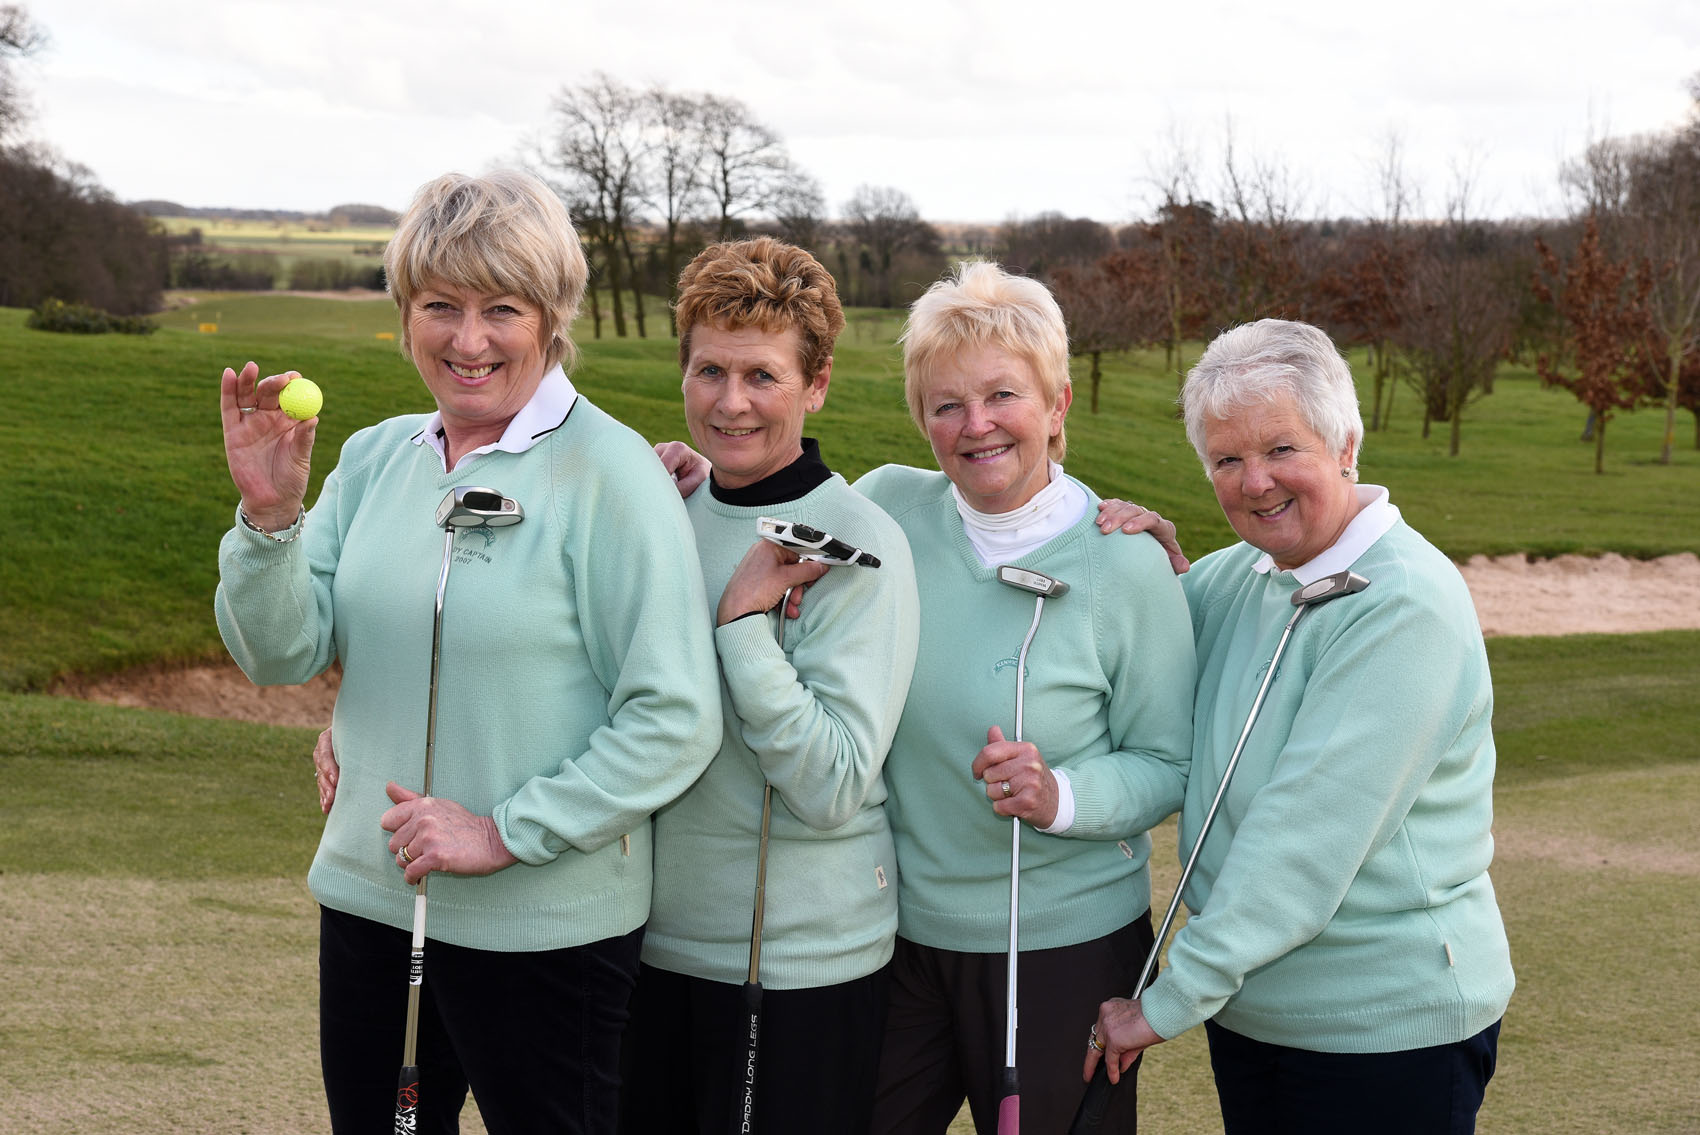 Eye Surgery Specialist Milind Pande talks about the Louth Lady Golfers